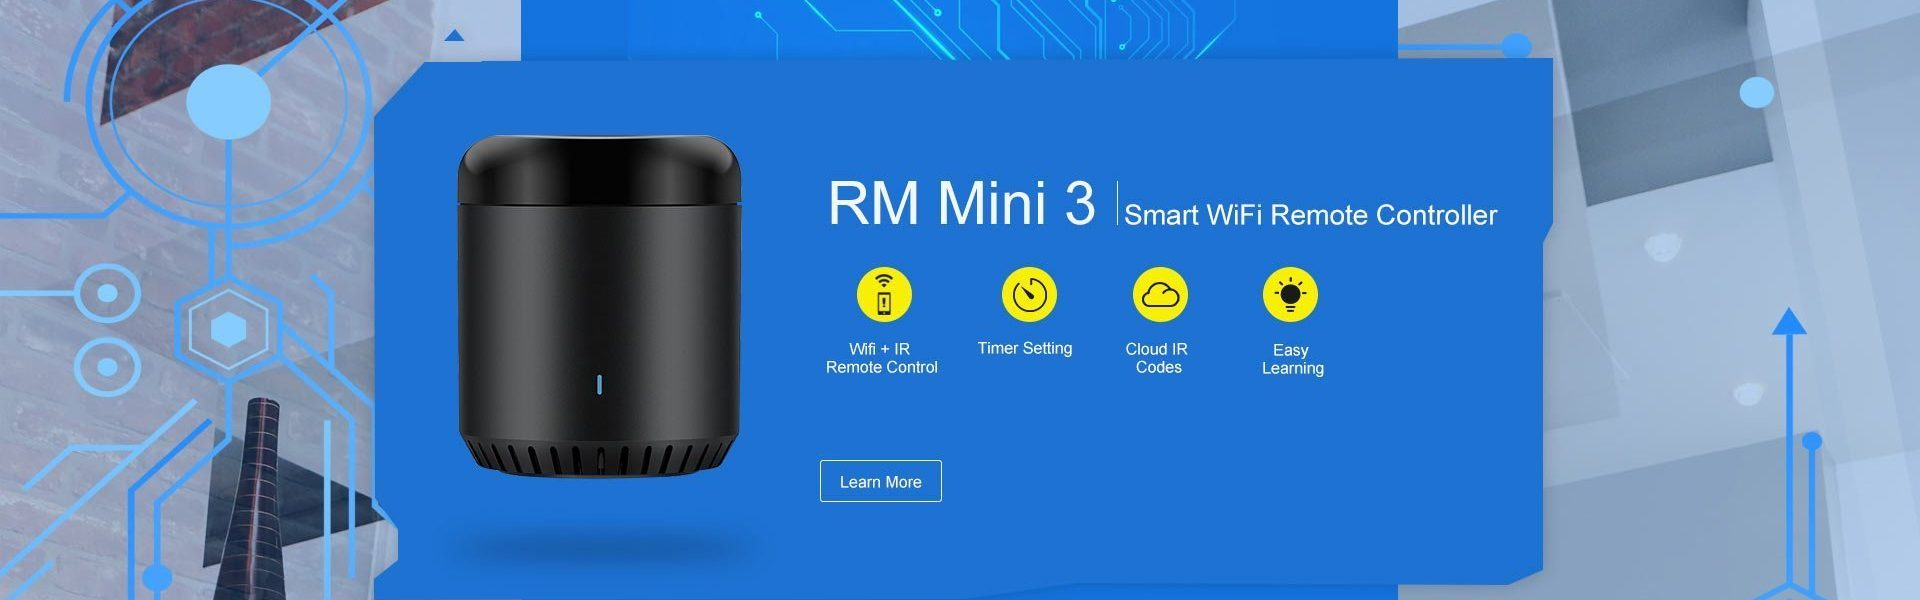 Broadlink Rm mini3 smart ir universal remote control Home automation